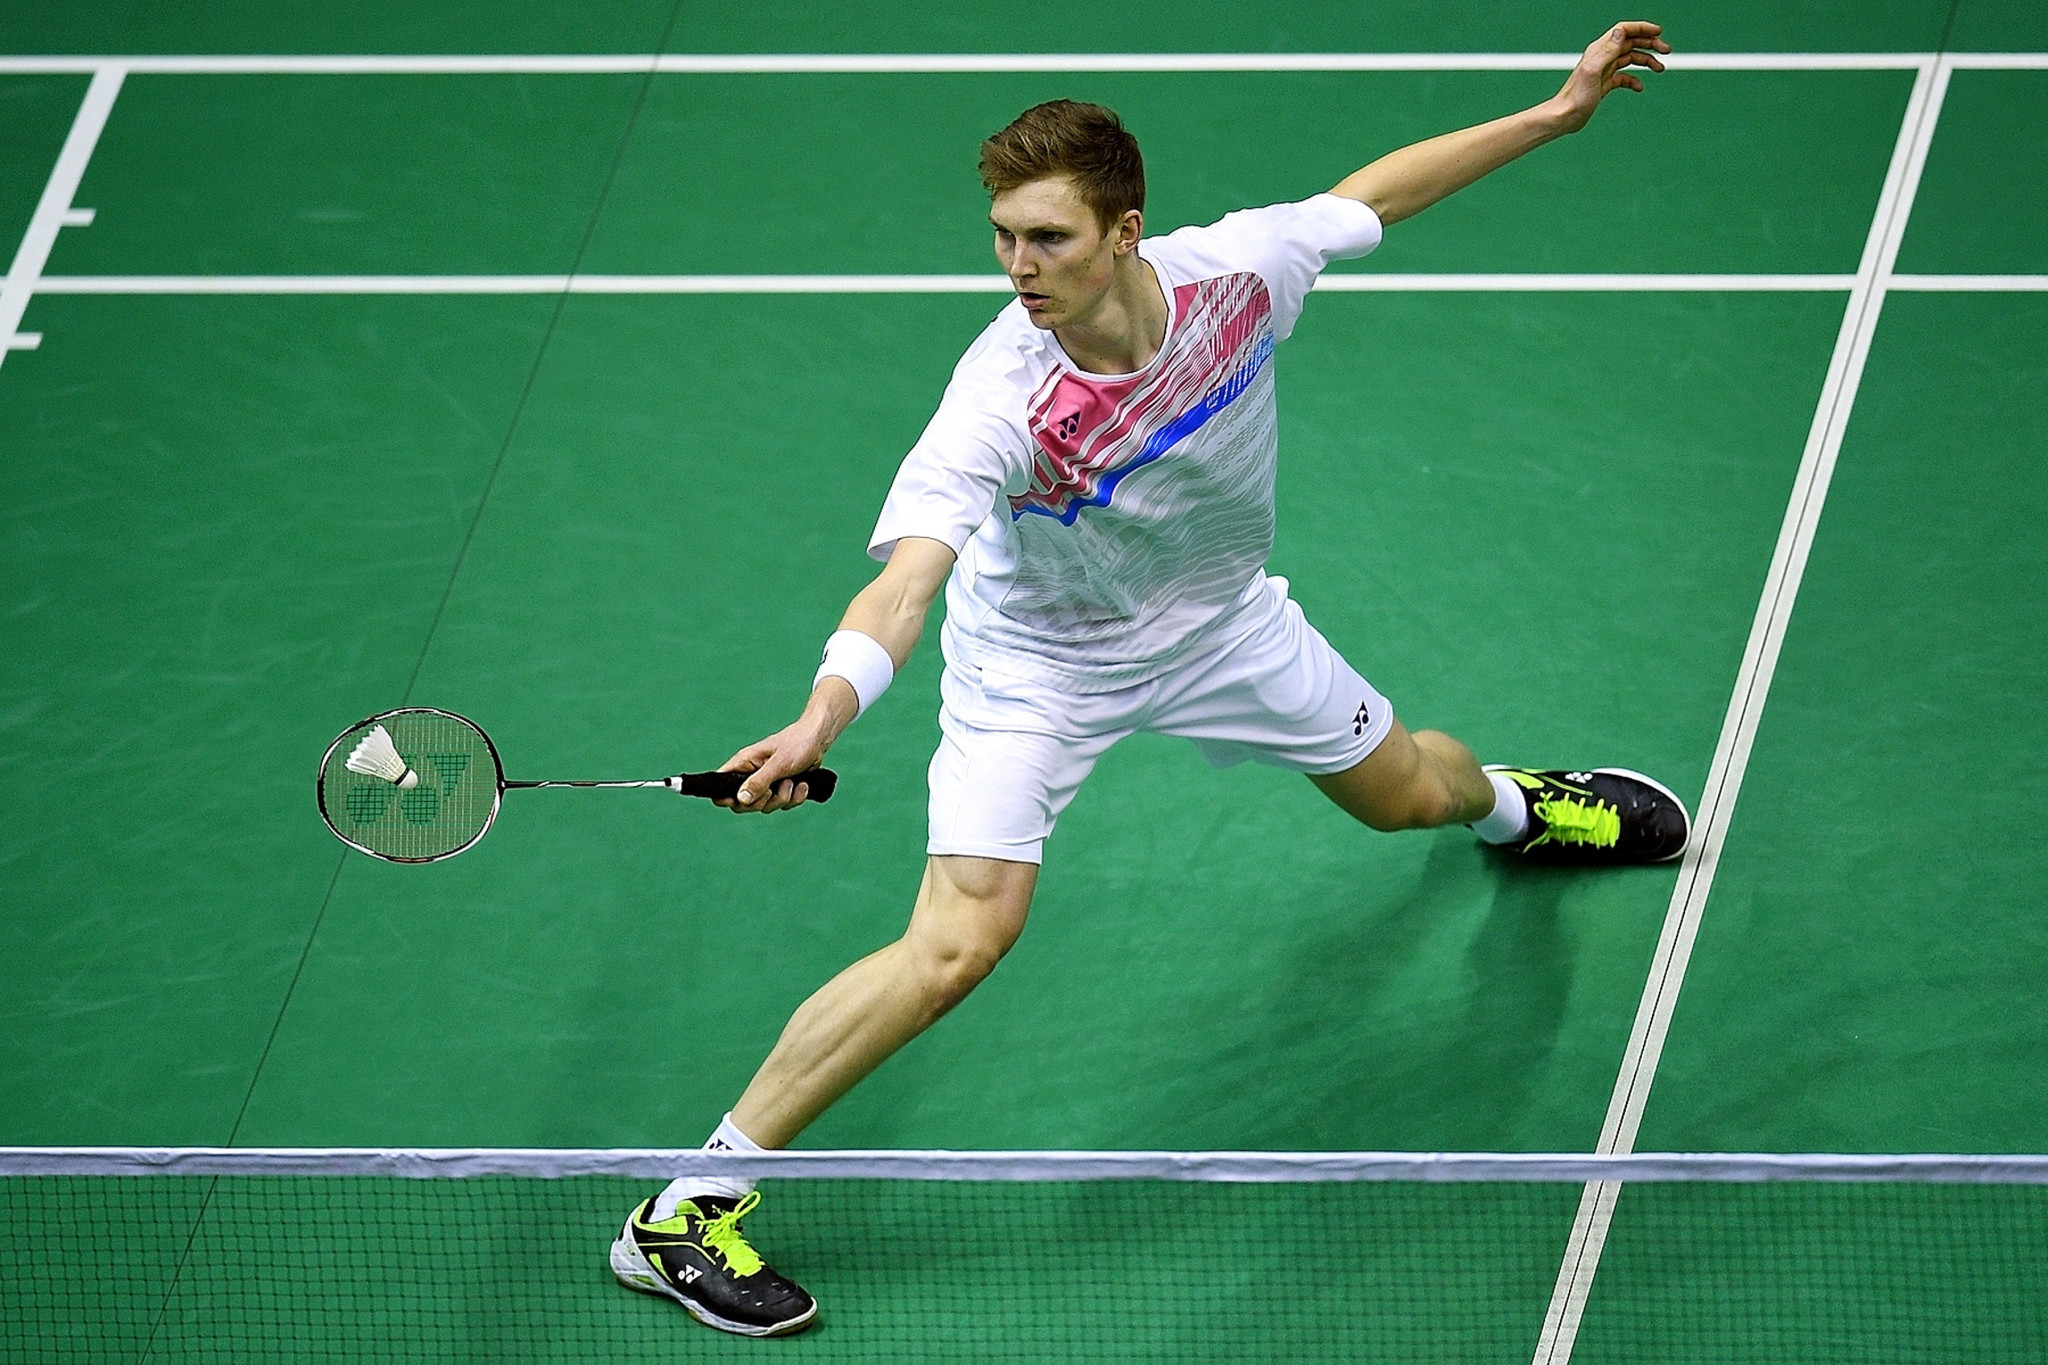 Axelsen looking for second straight BWF Masters title as circuit heads to Indonesia